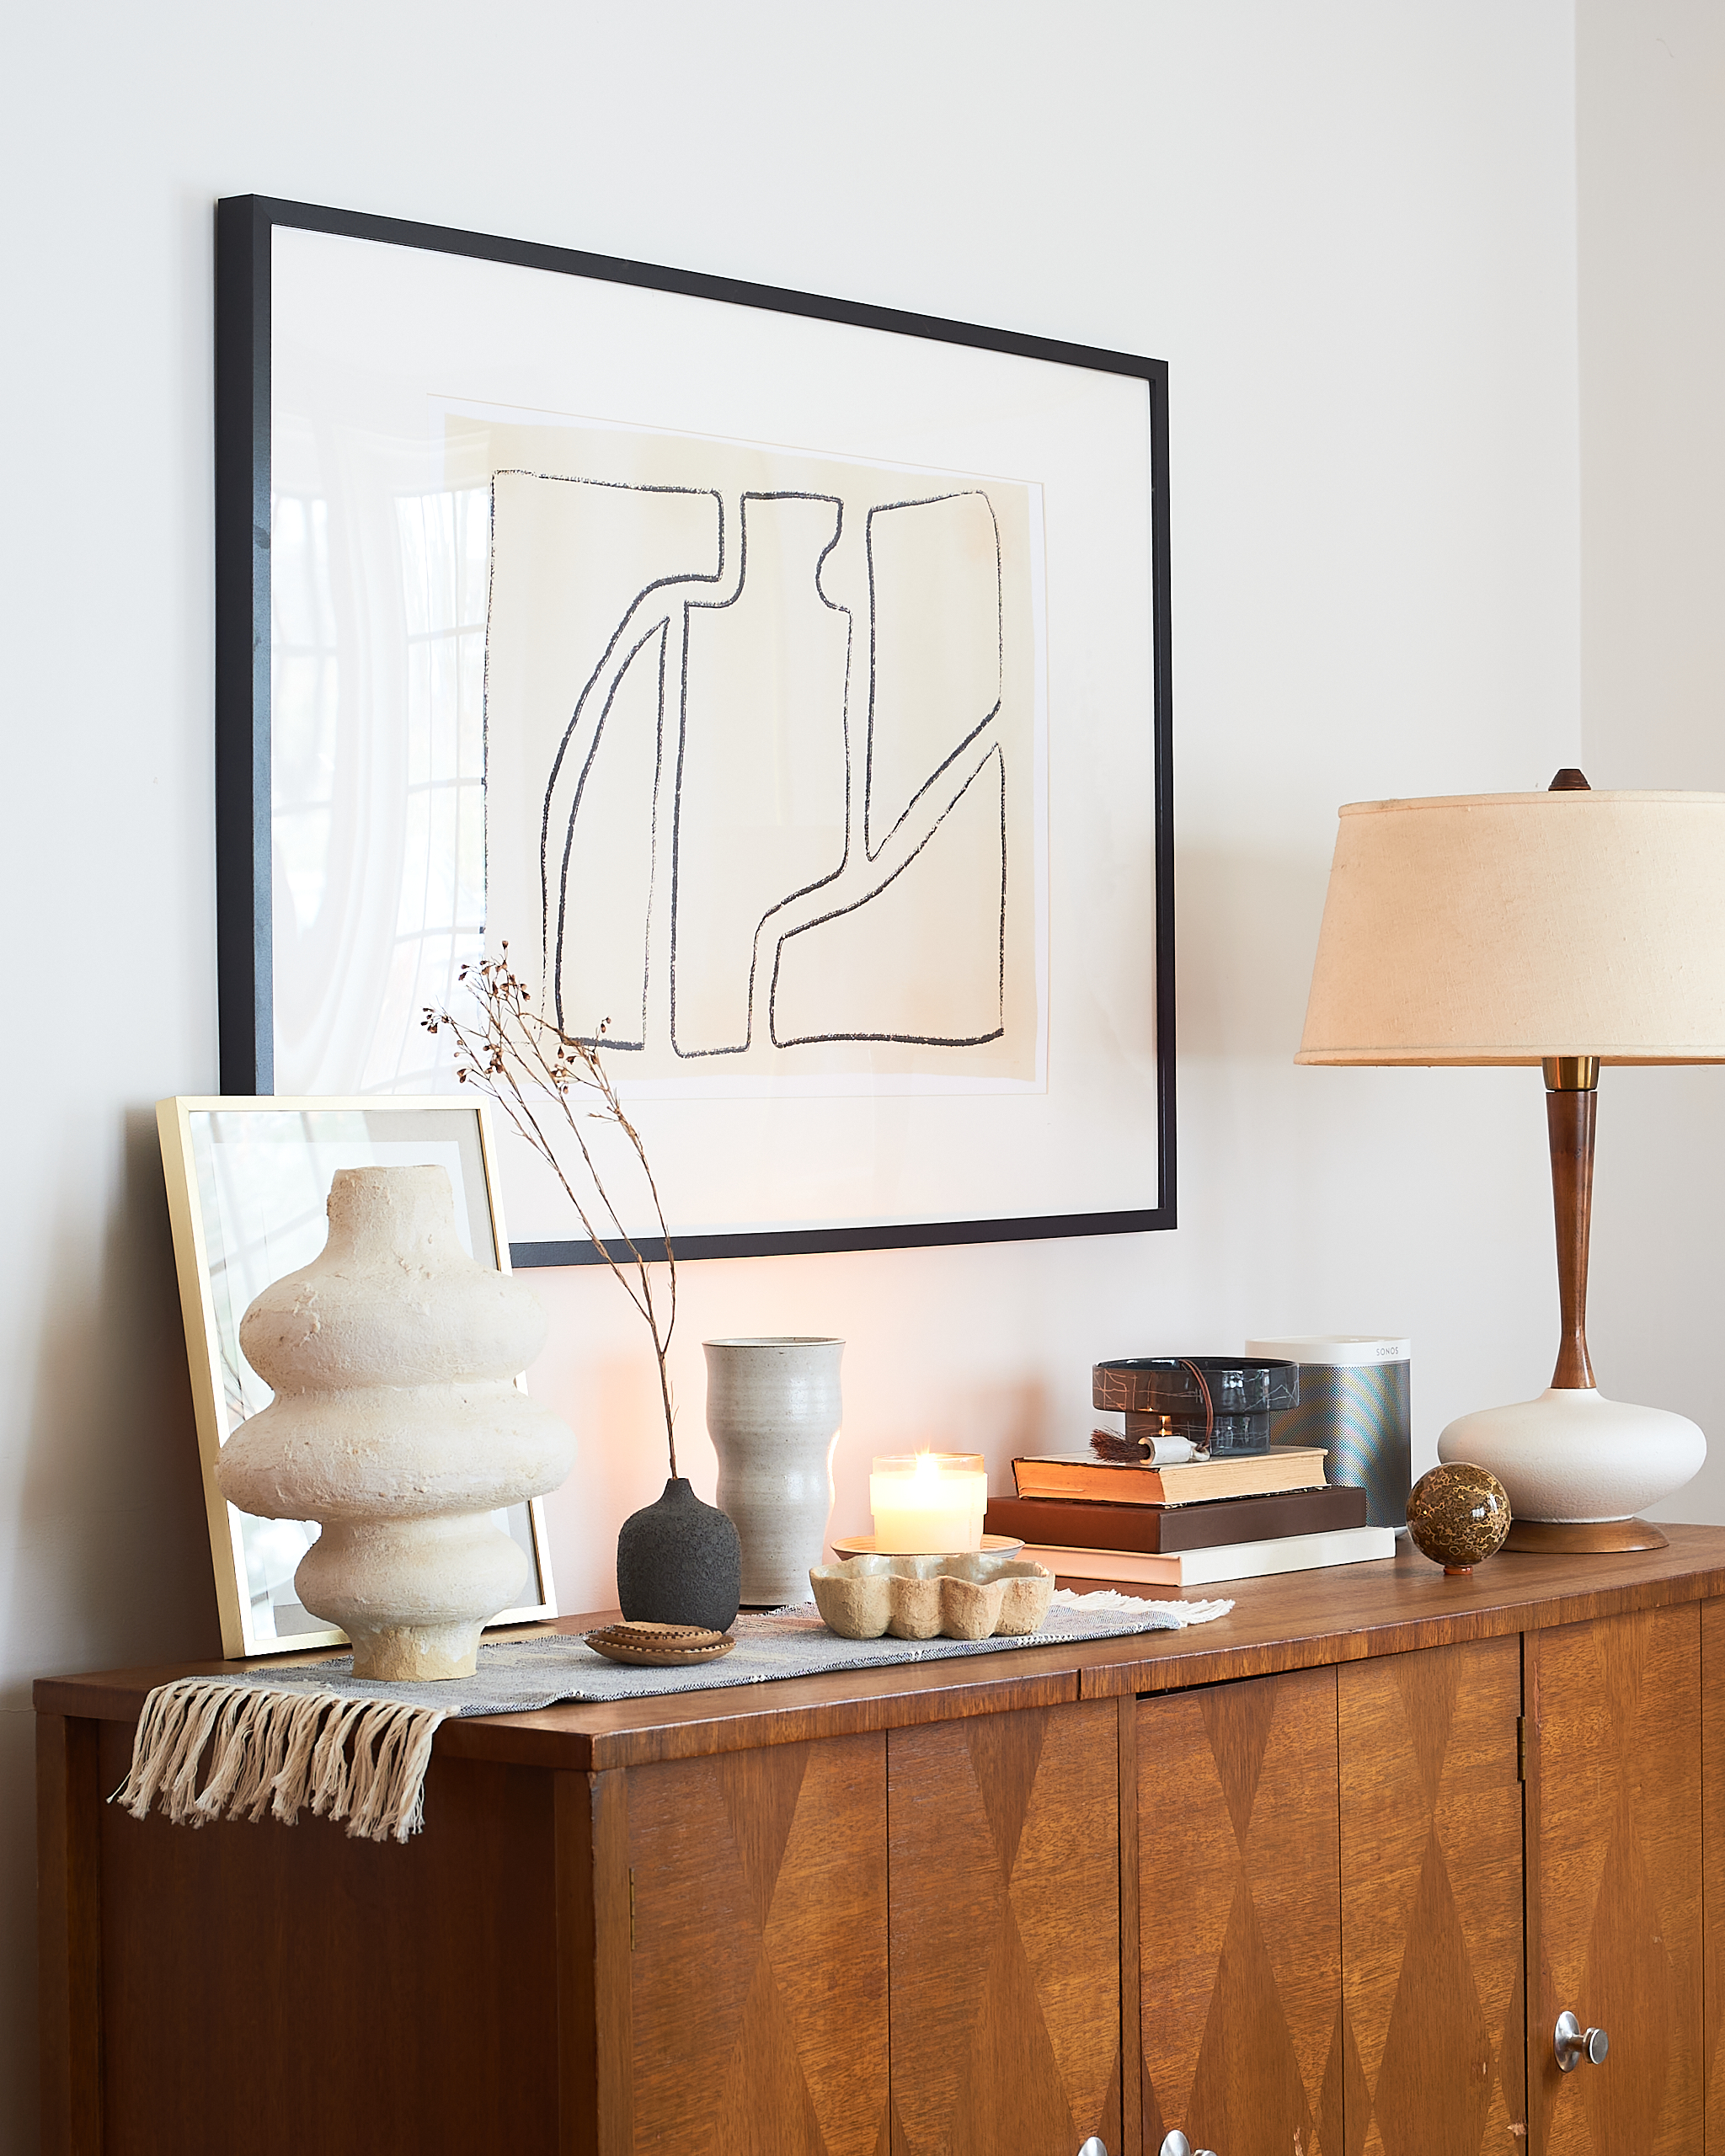 Ceramic vessels styled on a credenza